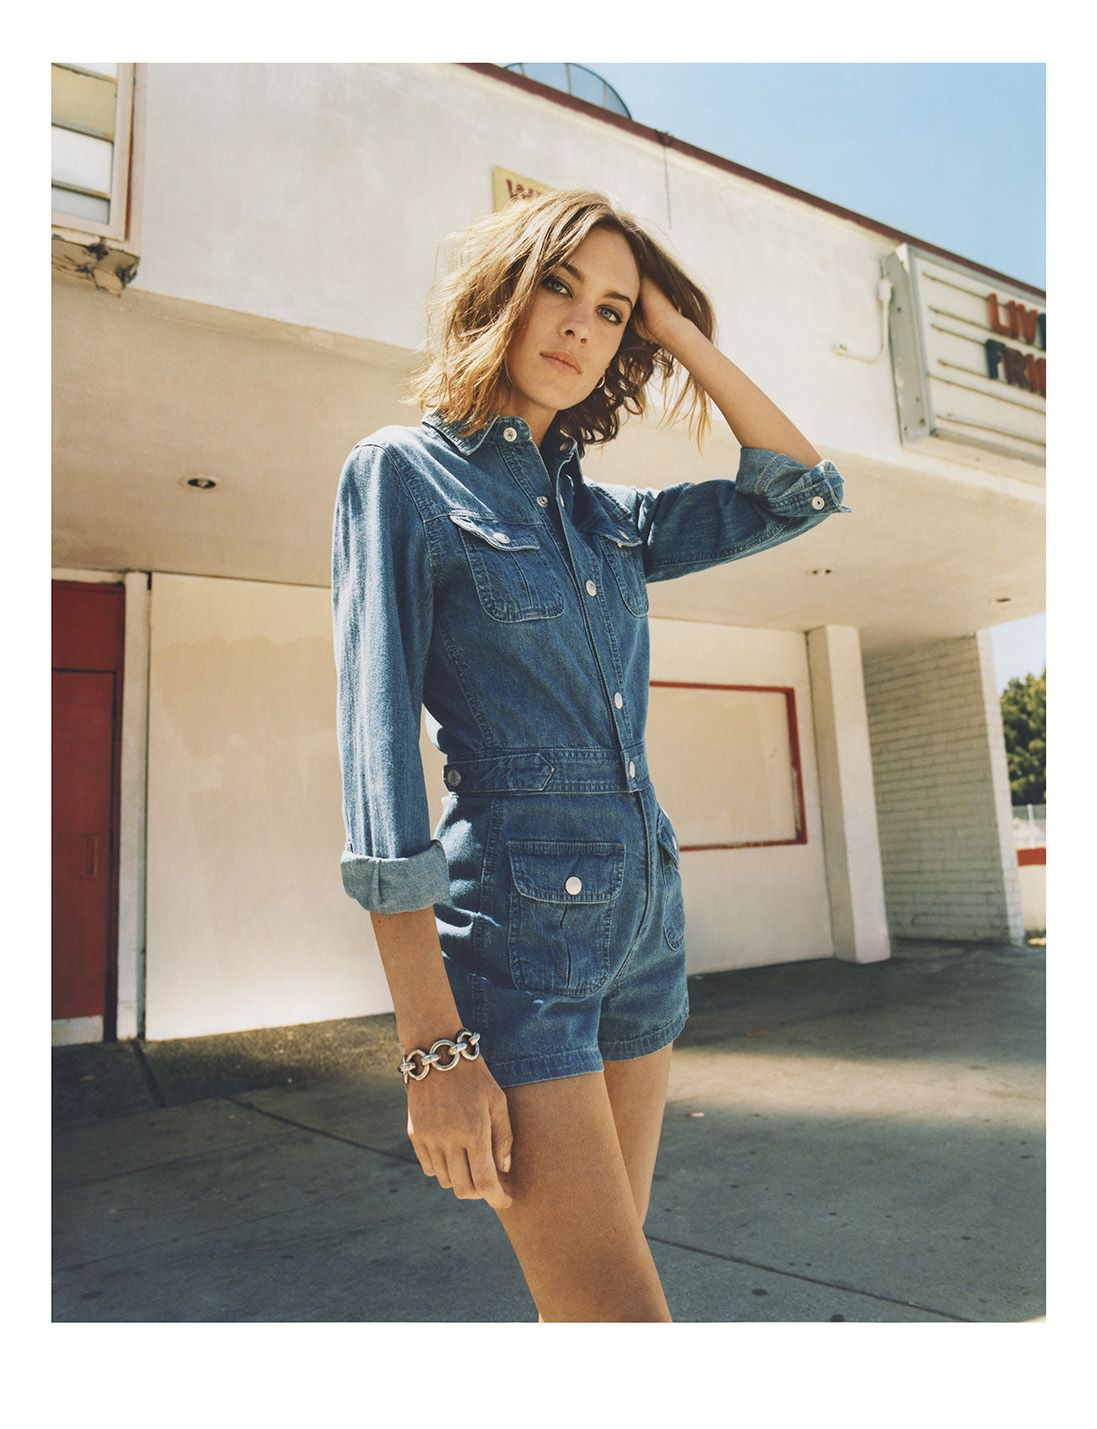 Loretta Long sleeve denim jumpsuit by Alexa Chung for AG Jeans